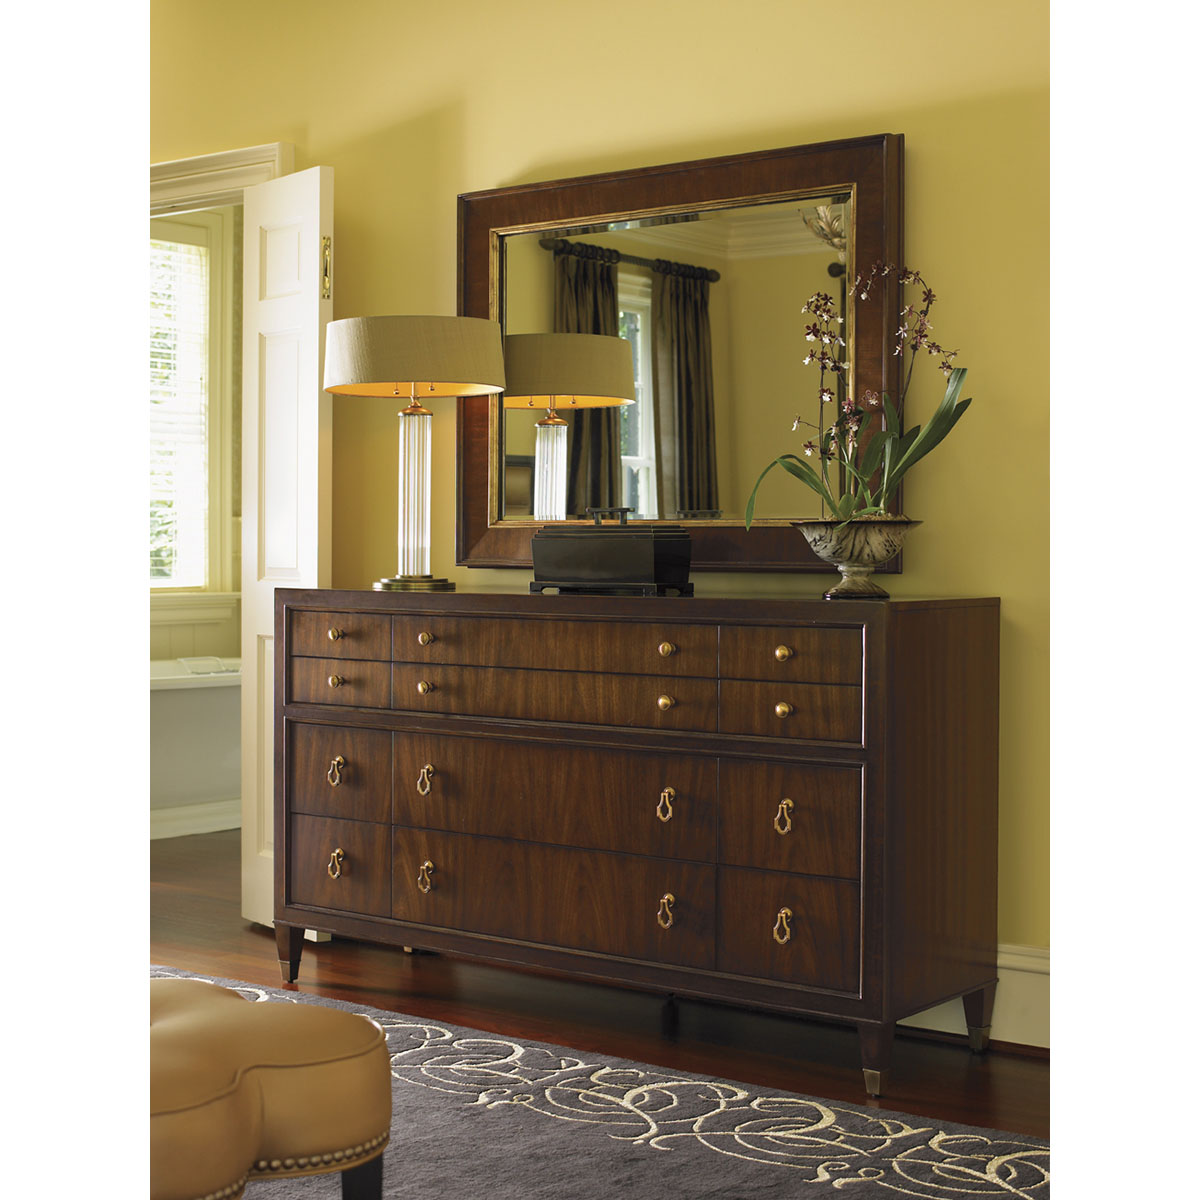 Image of: Lexington Dresser and Lamps